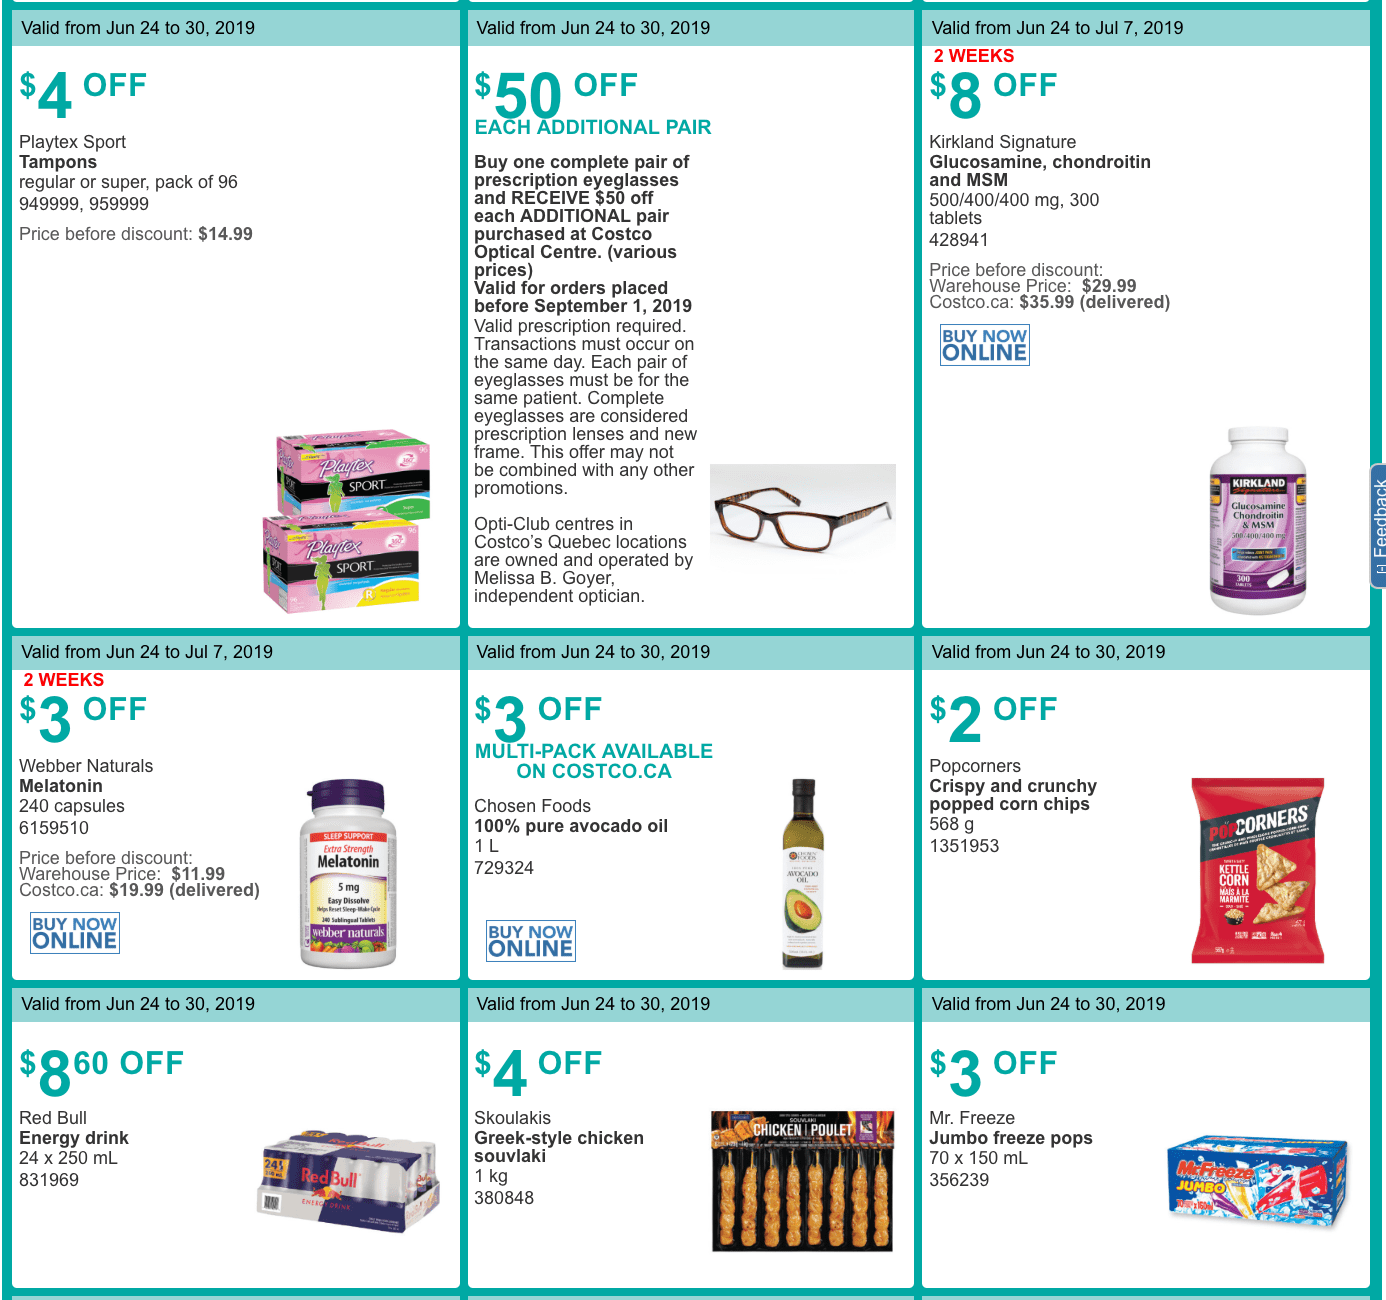 ed271c8e6 Costco Quebec handouts are valid from June 24, 2019, until June 30, 2019.  Some of the deals are valid until July 14, 2019.